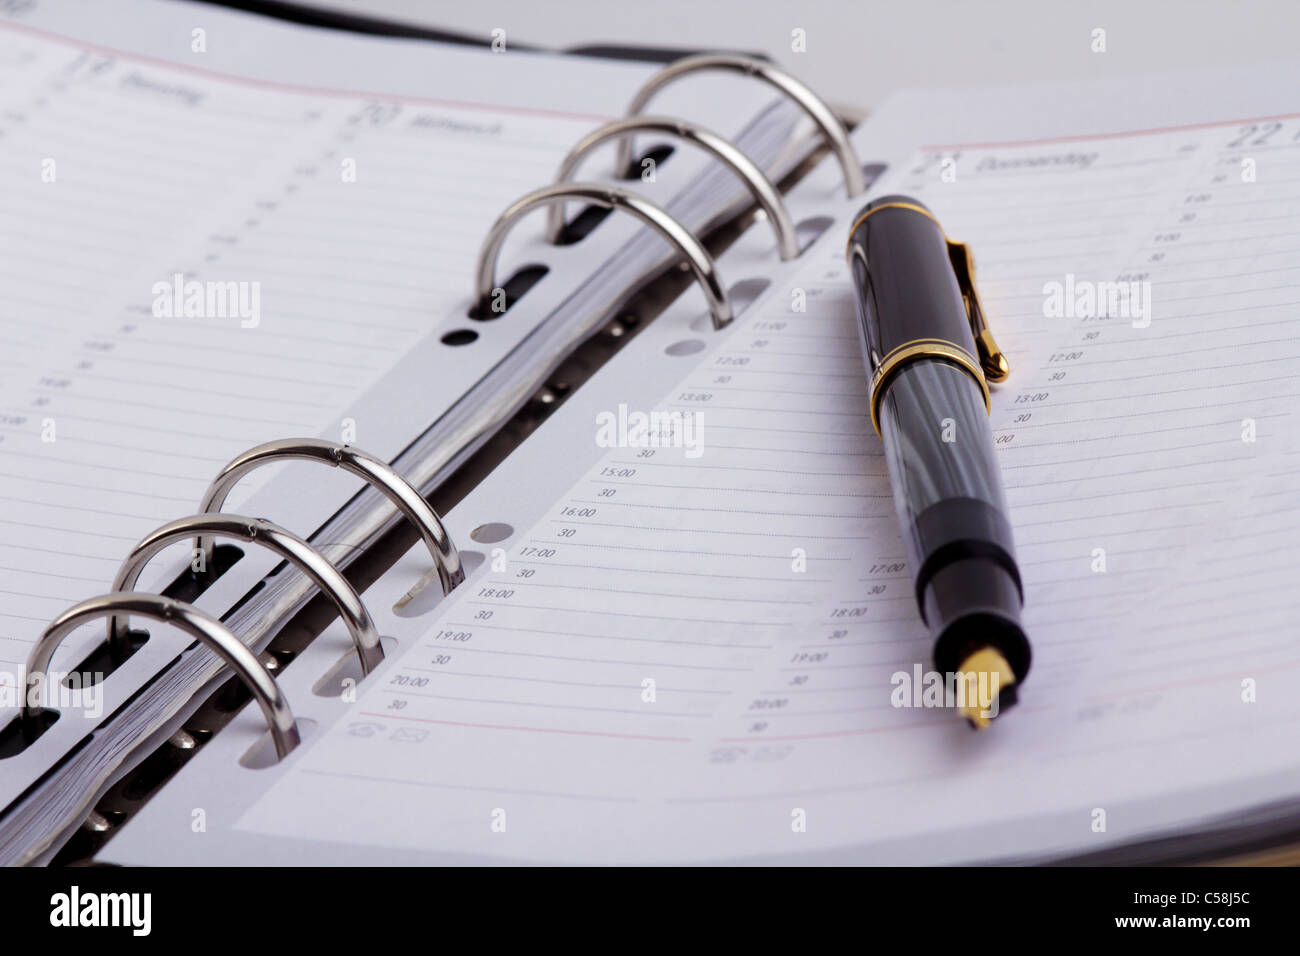 filler on open diary - Stock Image